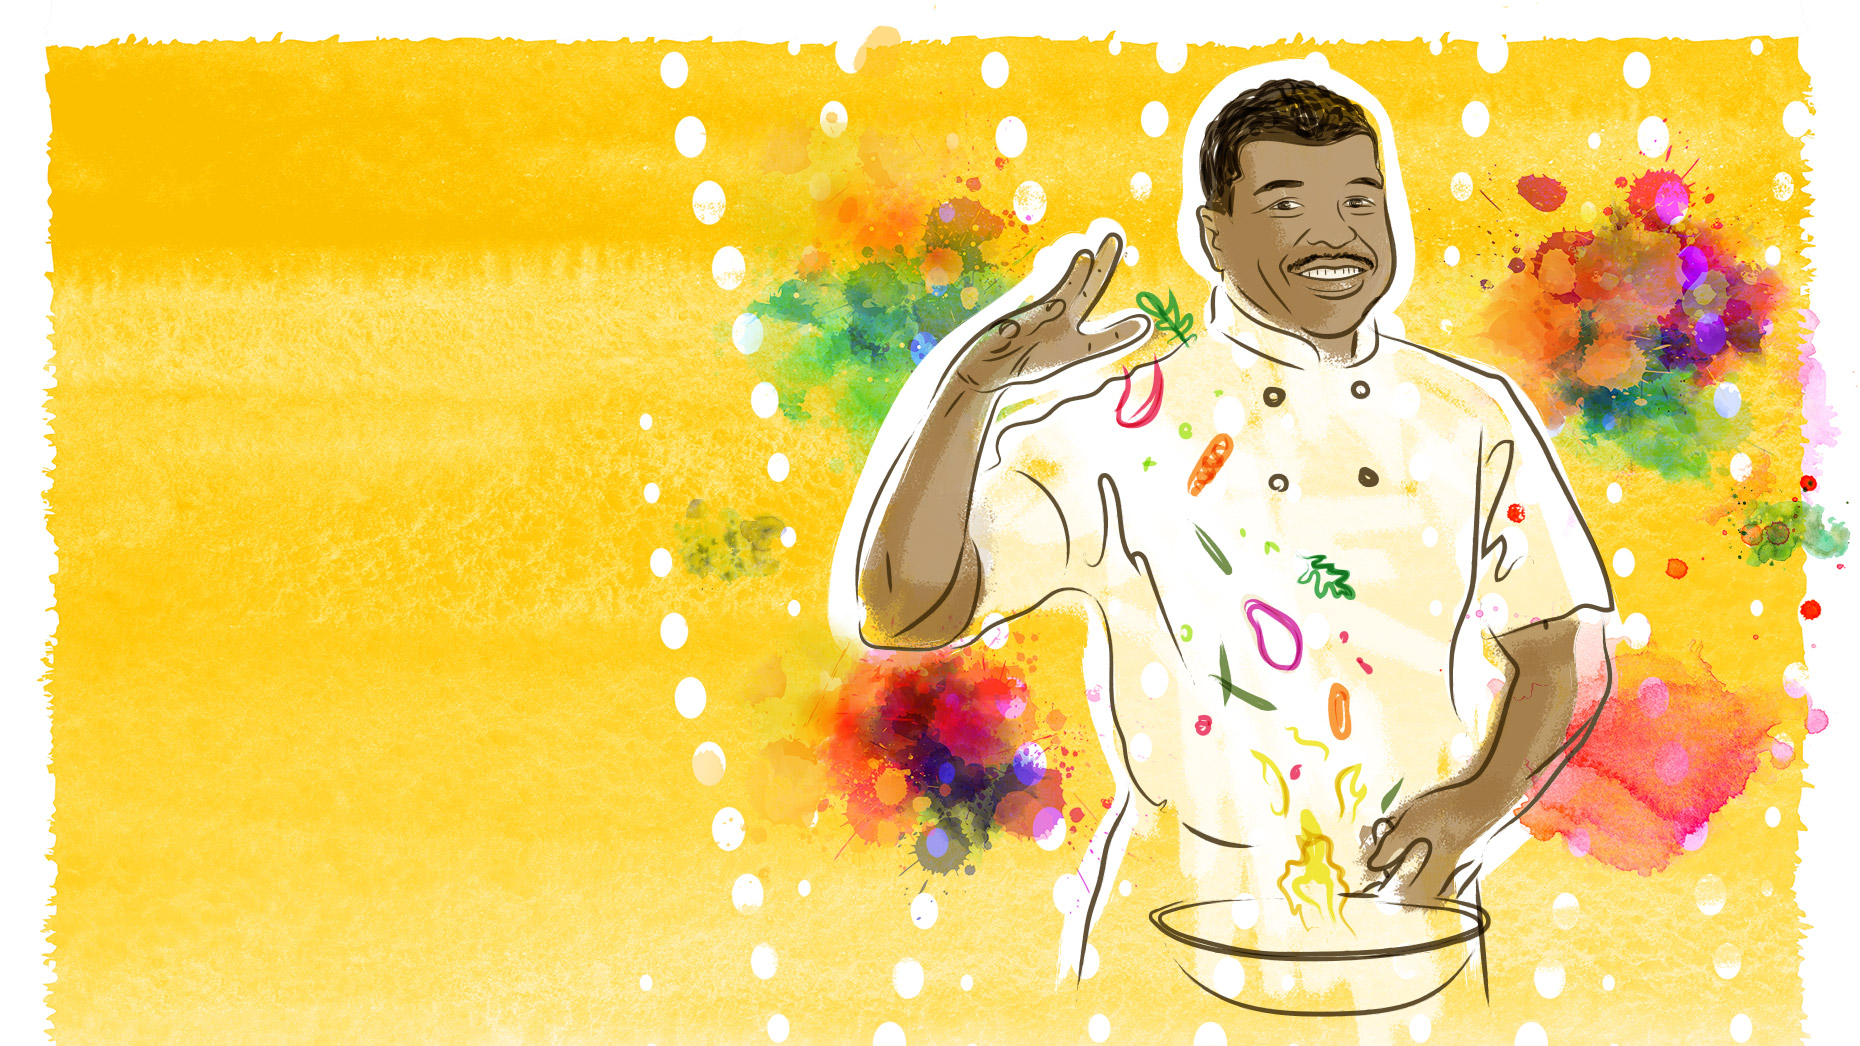 Digital illustration with Michone Arrington throwing food ingredients into a pan